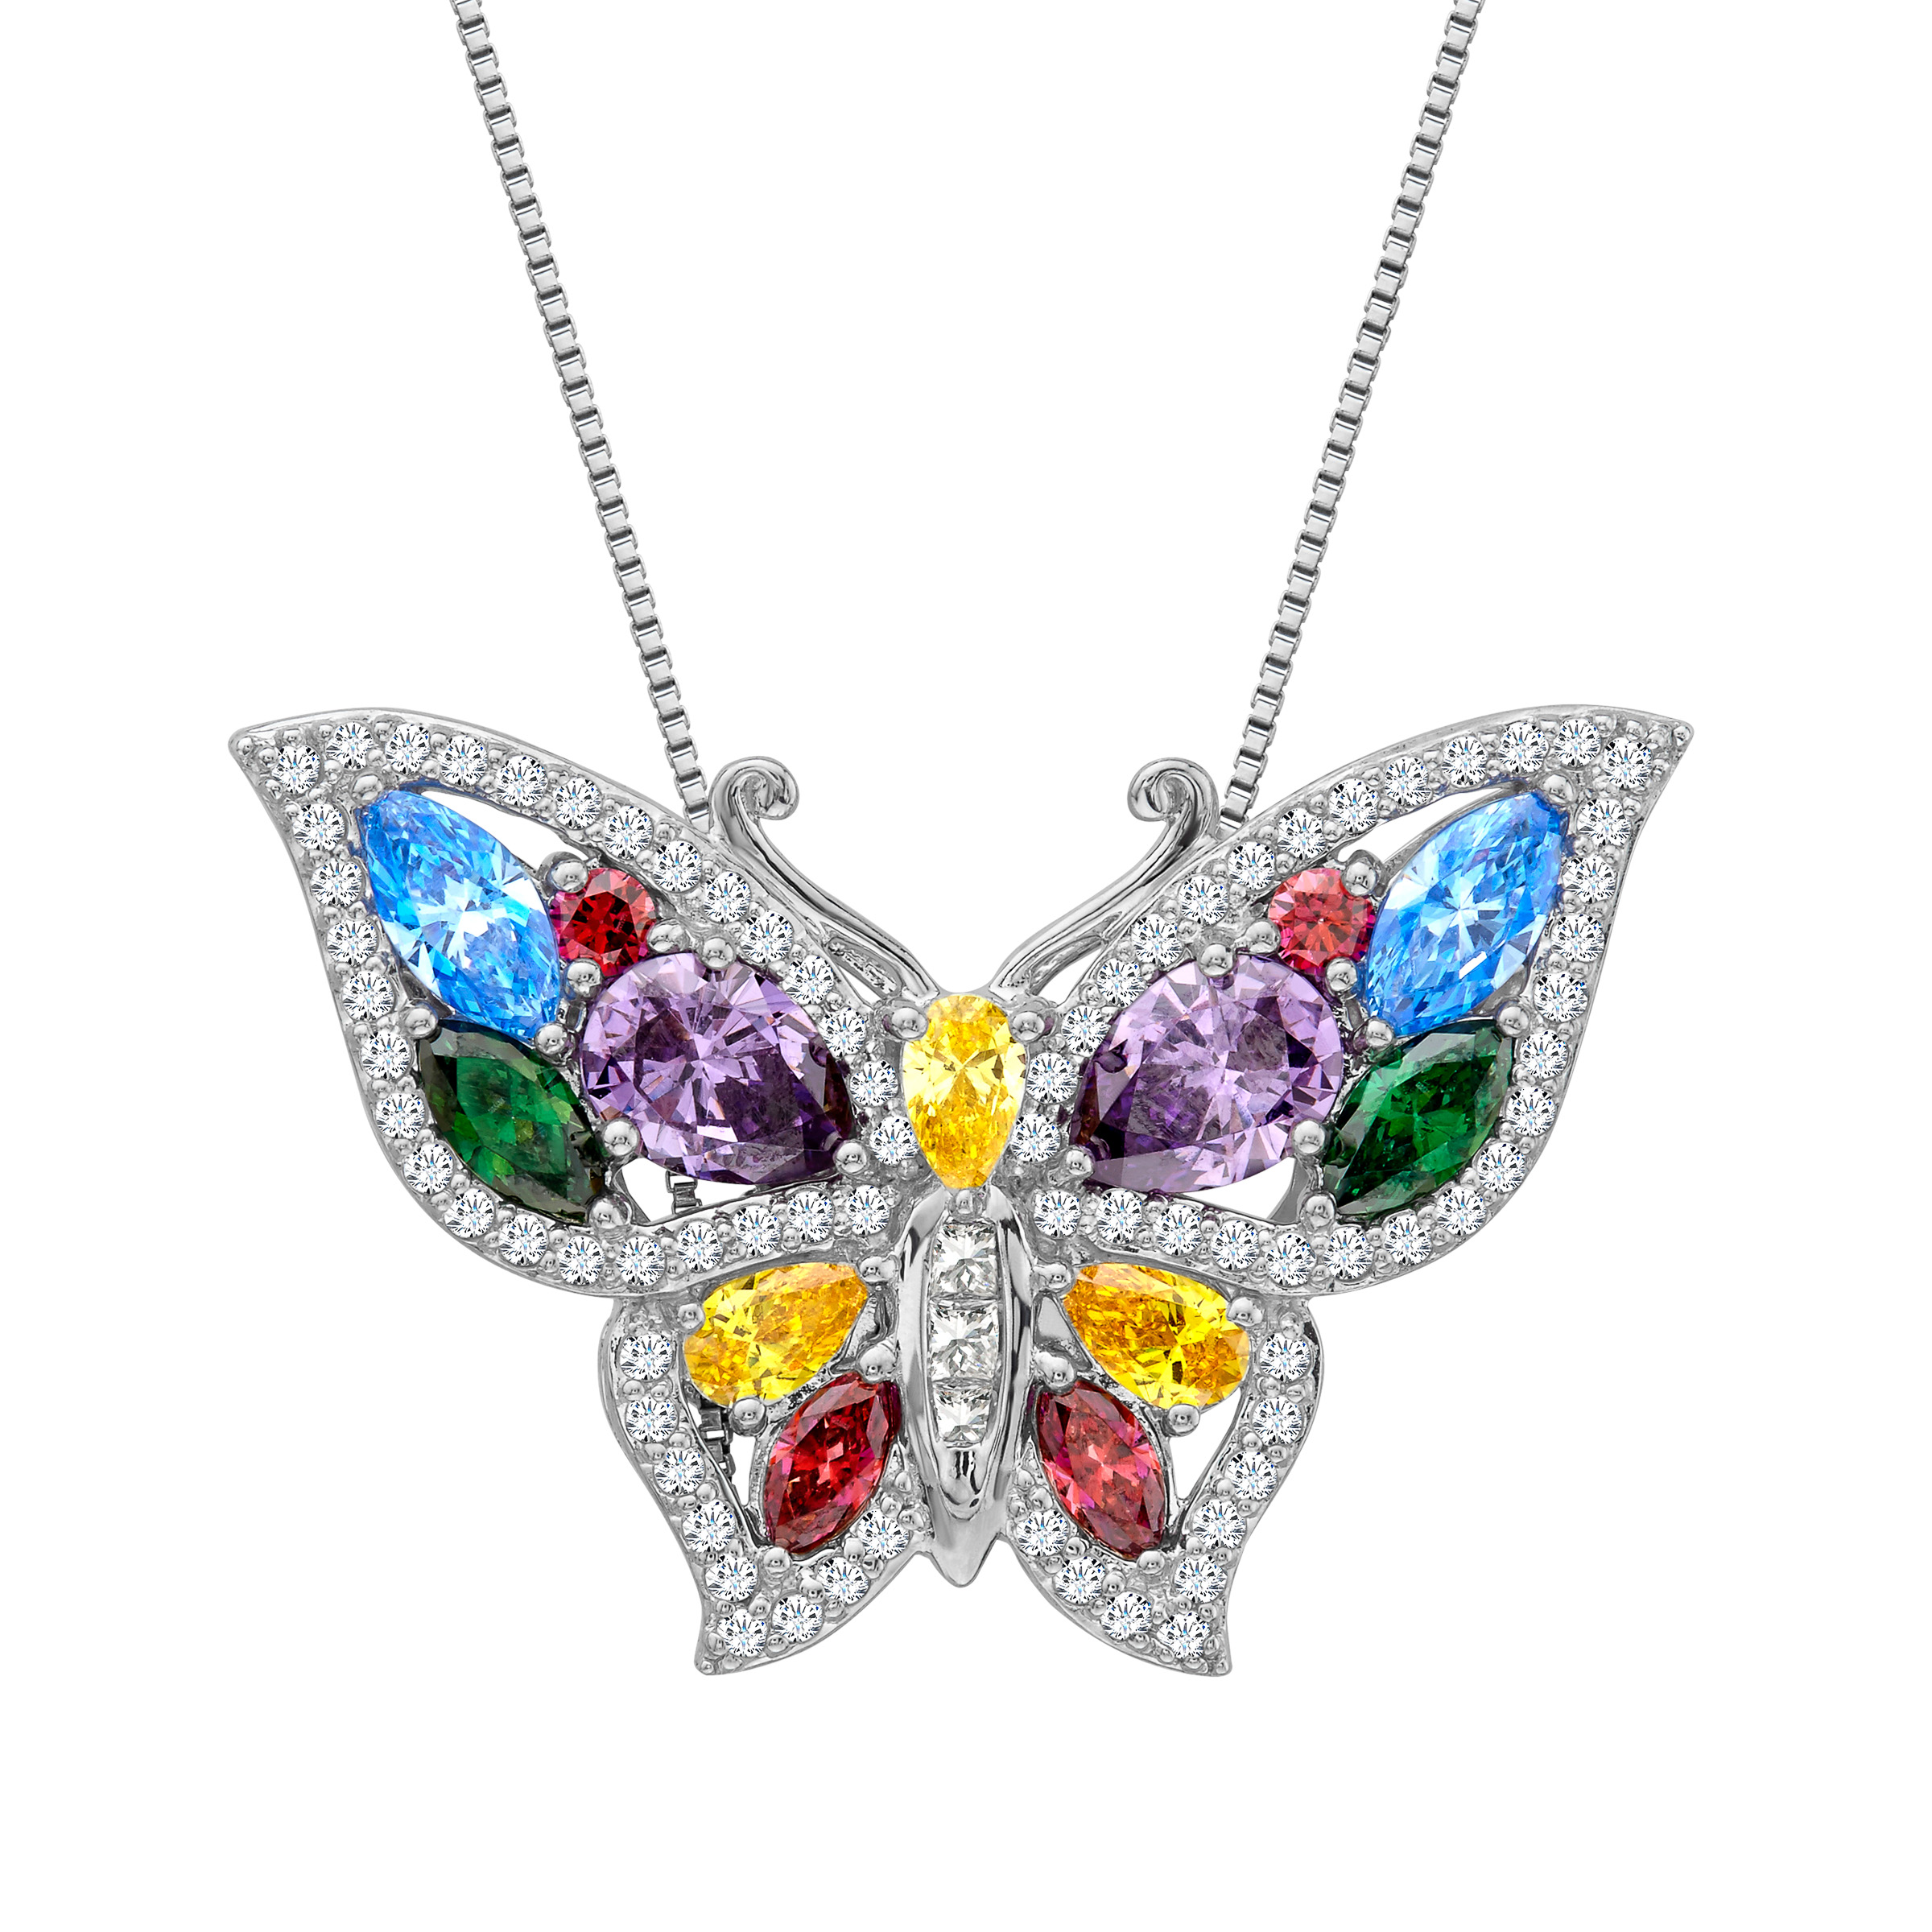 Butterfly Pendant Necklace with Multi-Color Cubic Zirconia in Sterling Silver